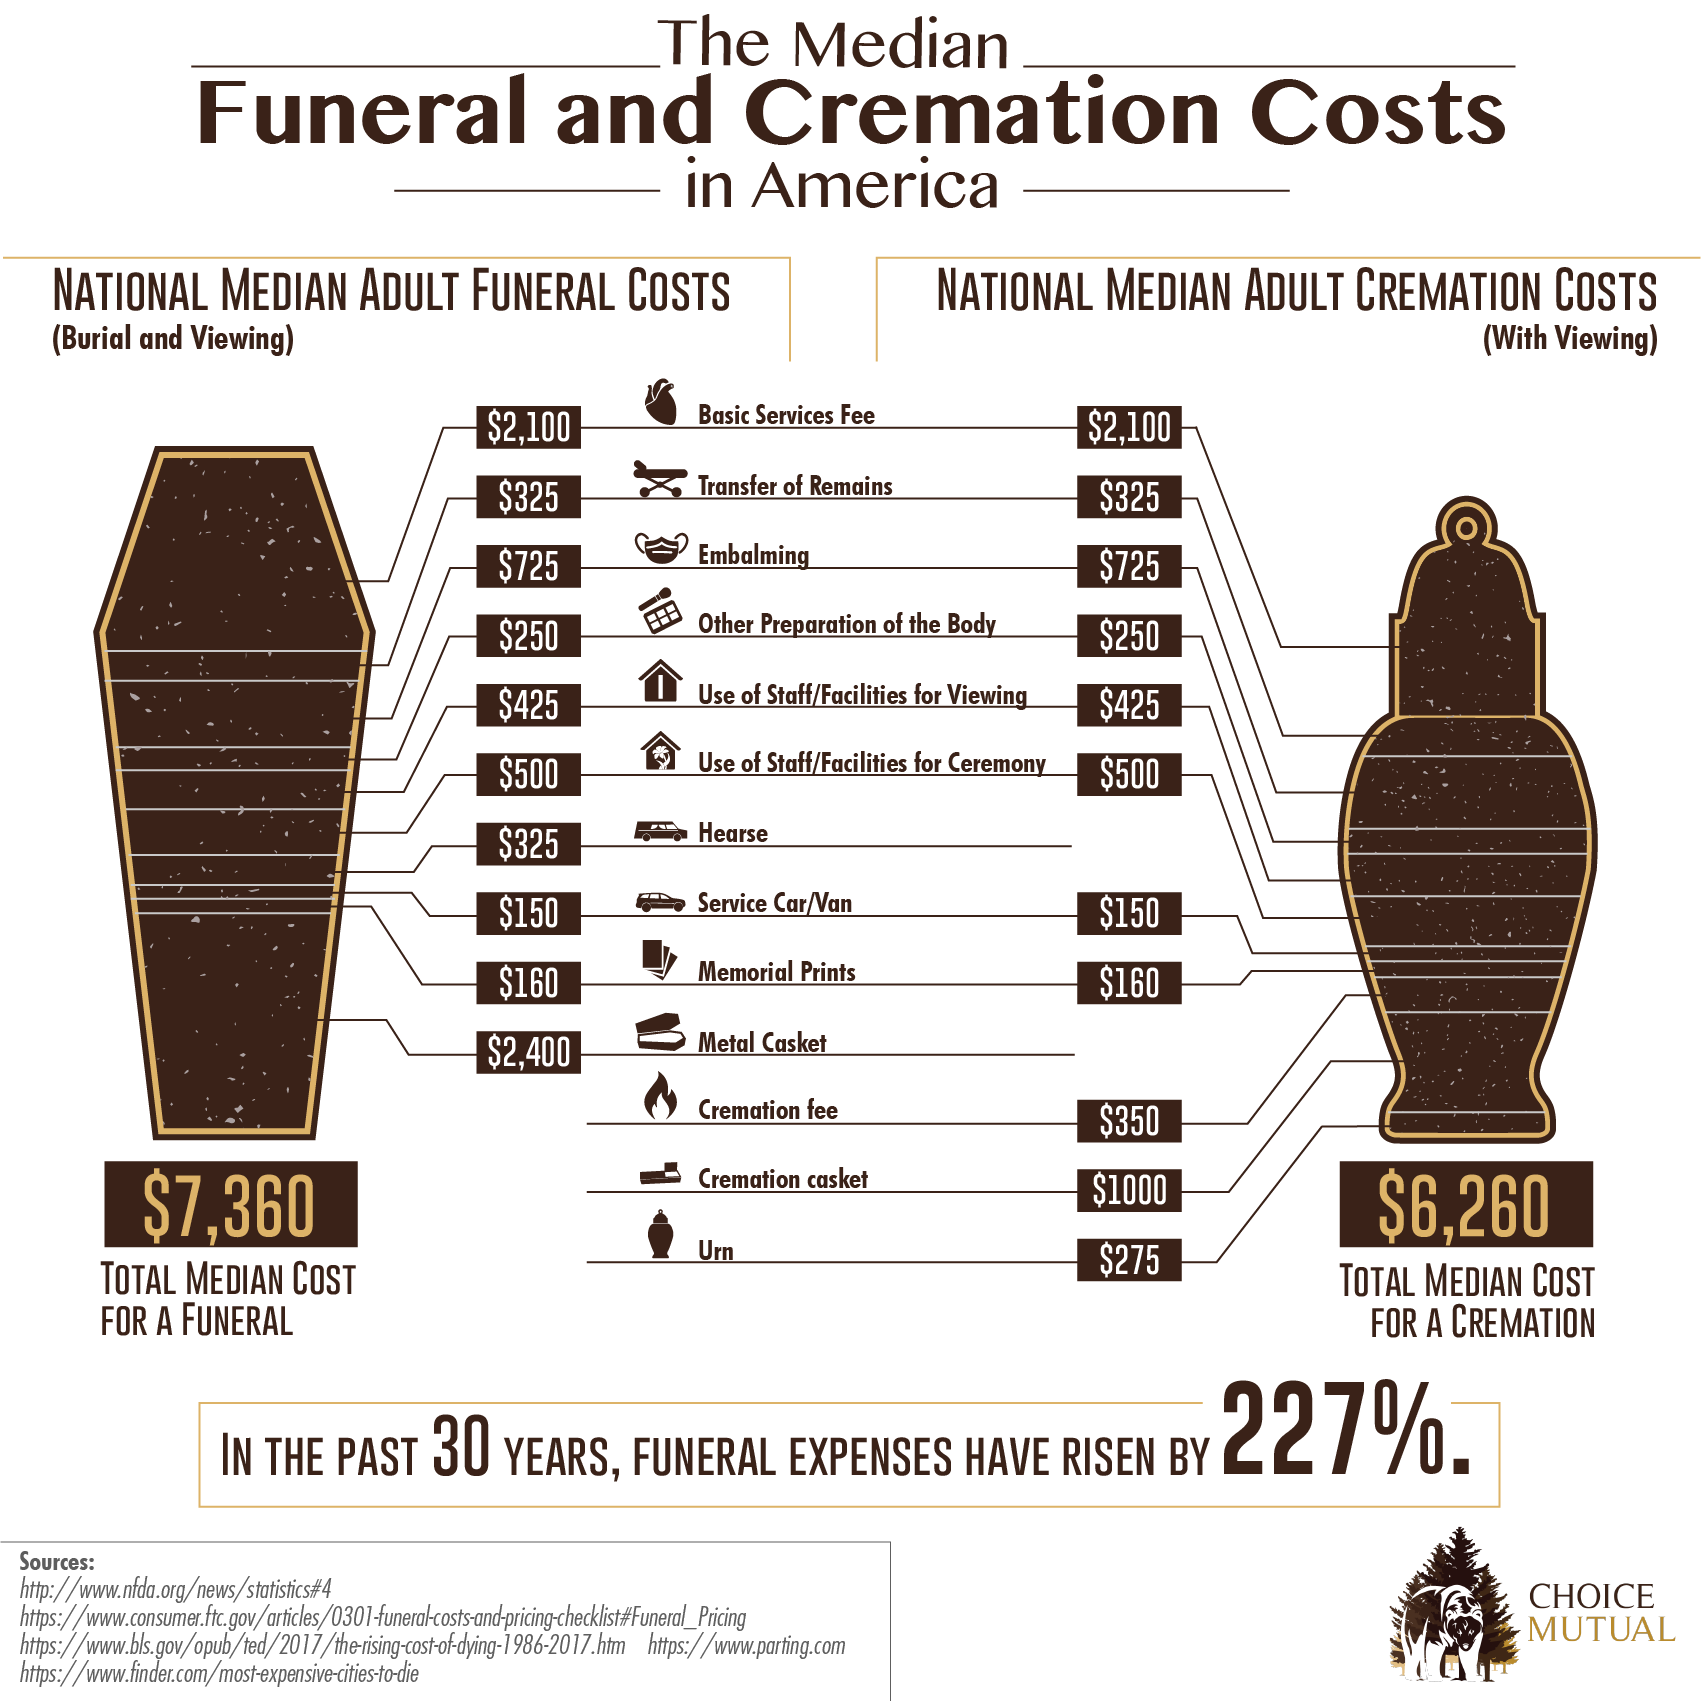 The Median Funeral and Cremation Costs in America - Infographic